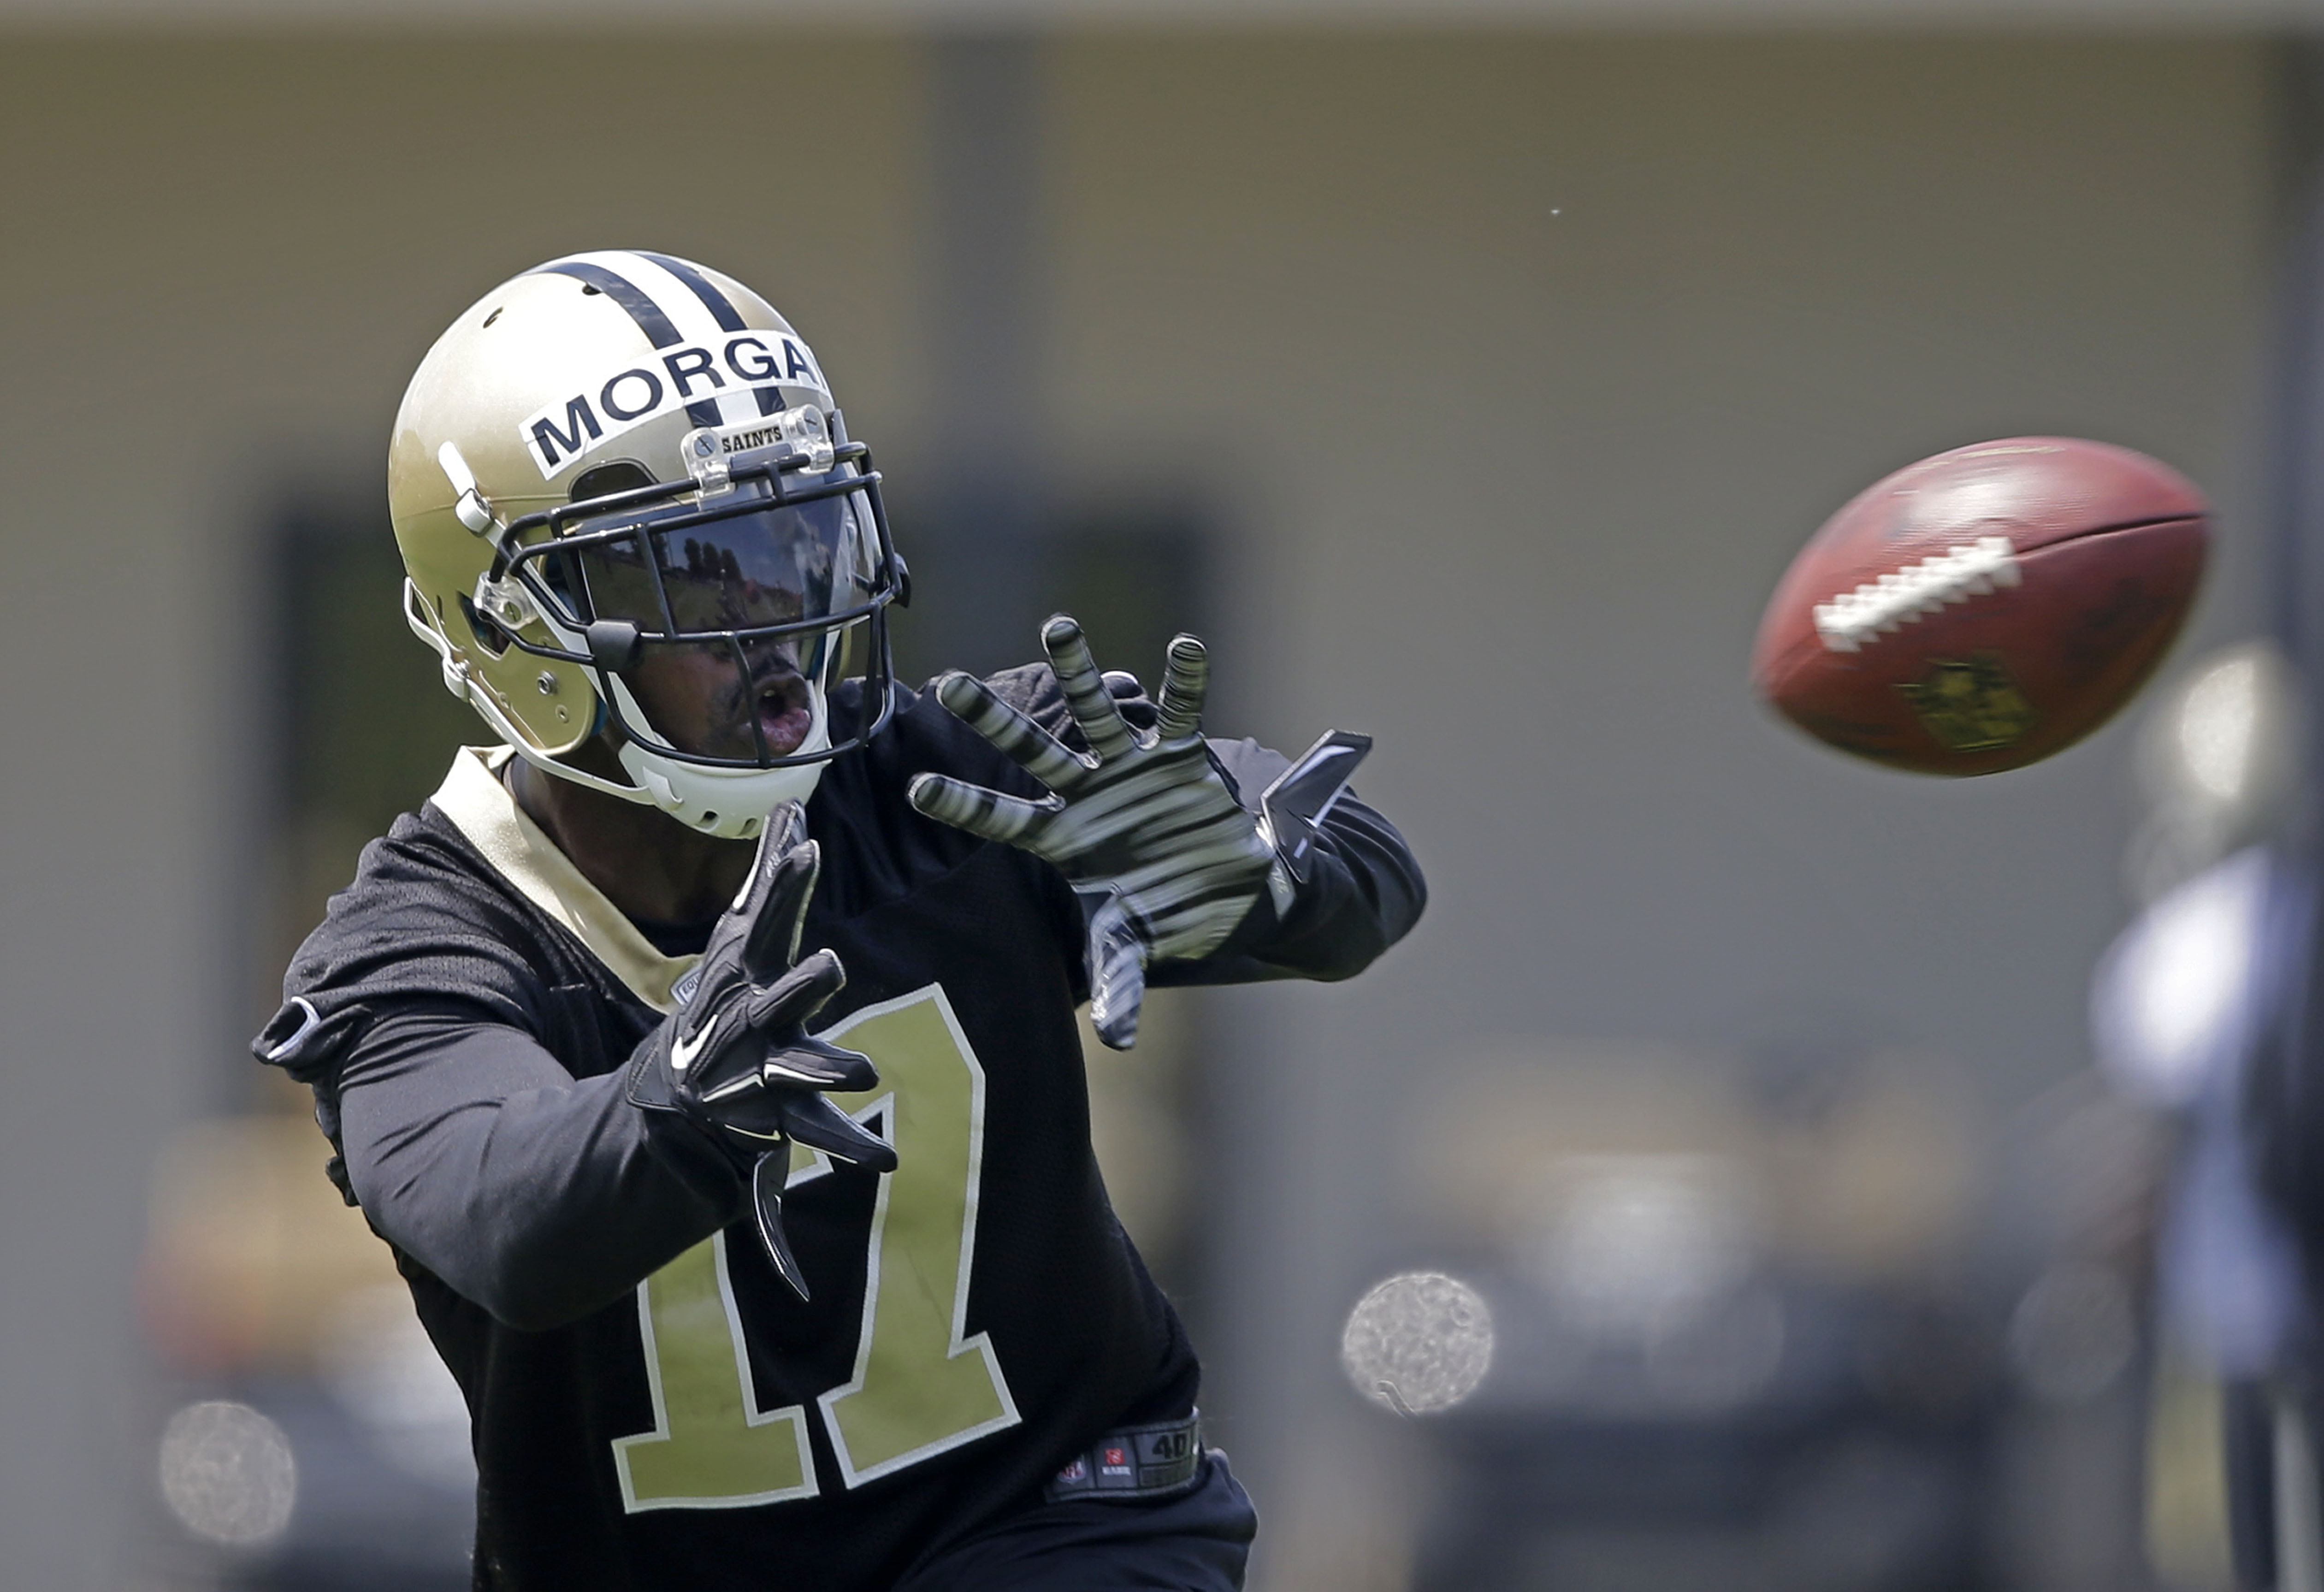 FILE - In this file photo taken June 4, 2015, New Orleans Saints wide receiver Josh Morgan (17) works out during an NFL football organized team activity in Metairie, La. While veteran receiver Morgan is by no means assured of a roster spot in New Orleans,